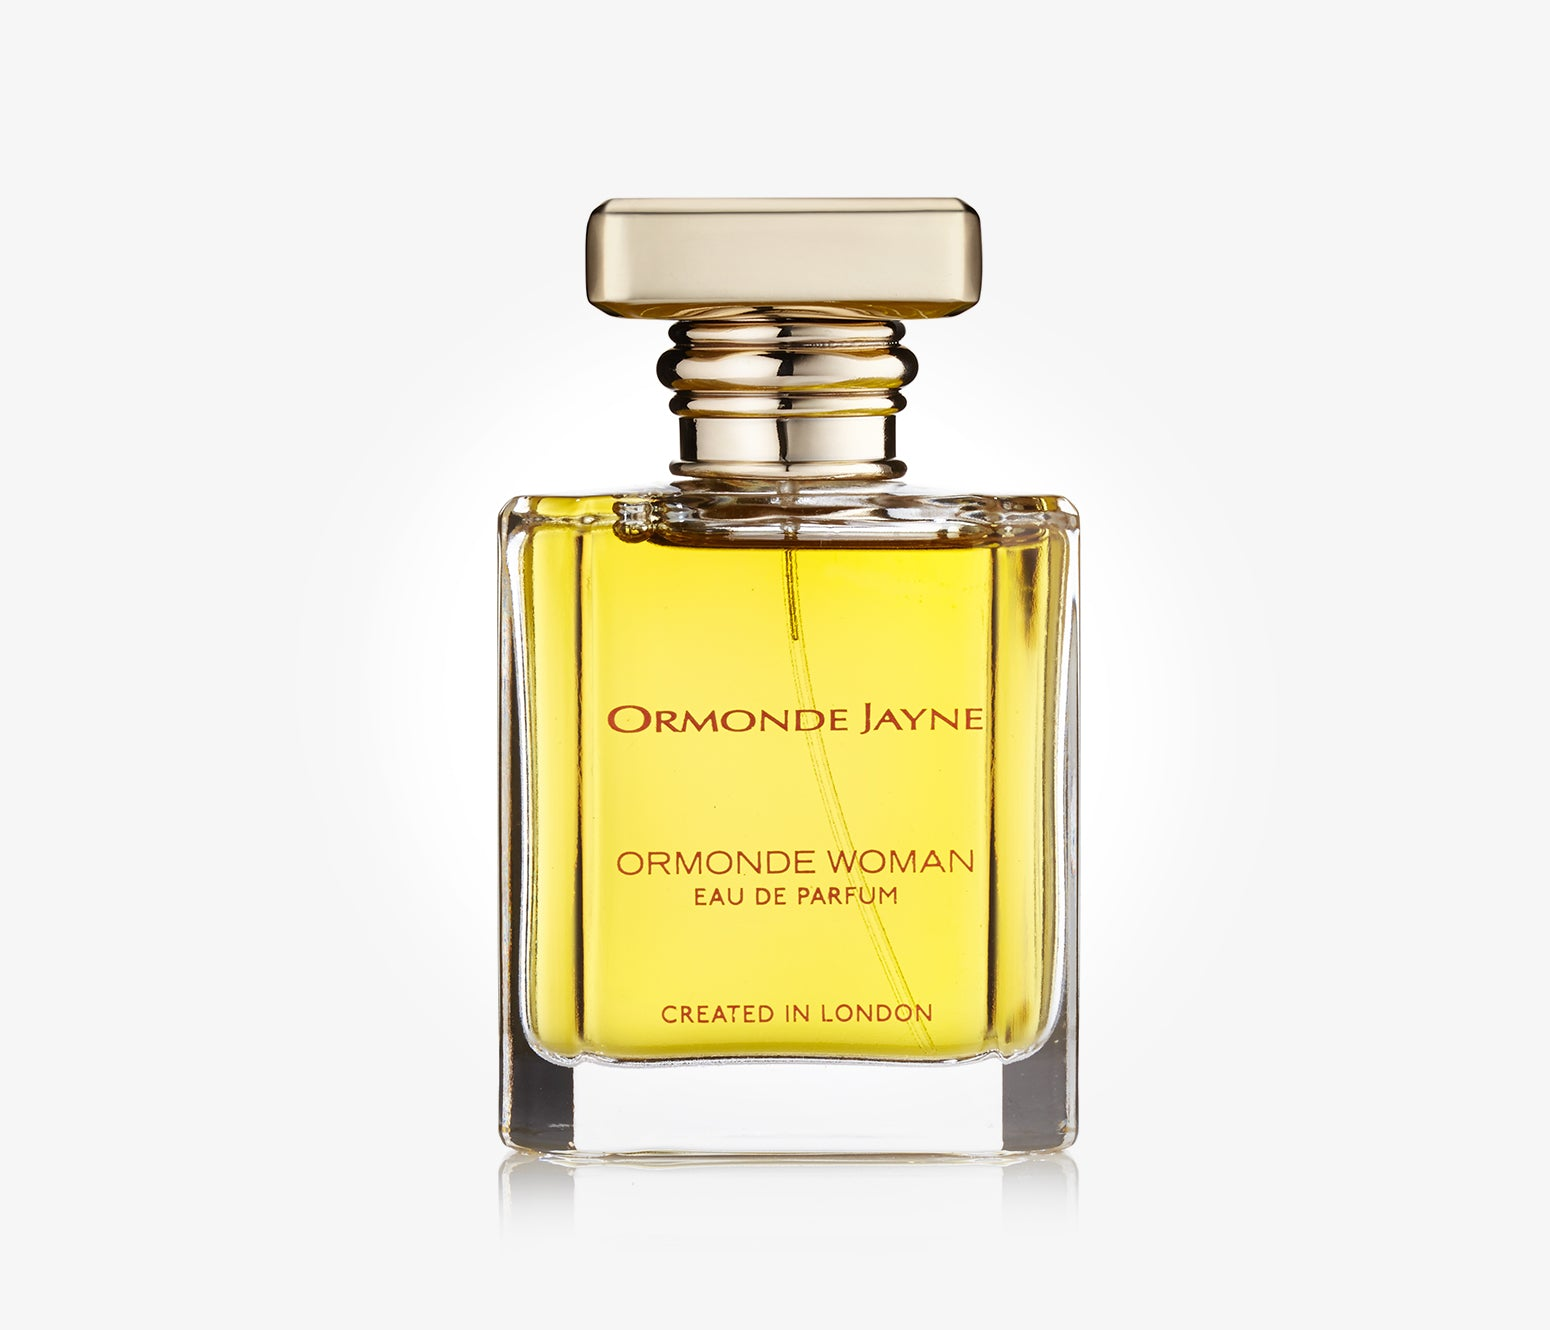 Ormonde Jayne - Ormonde Woman - 50ml - NAJ001 - Product Image - Fragrance - Les Senteurs